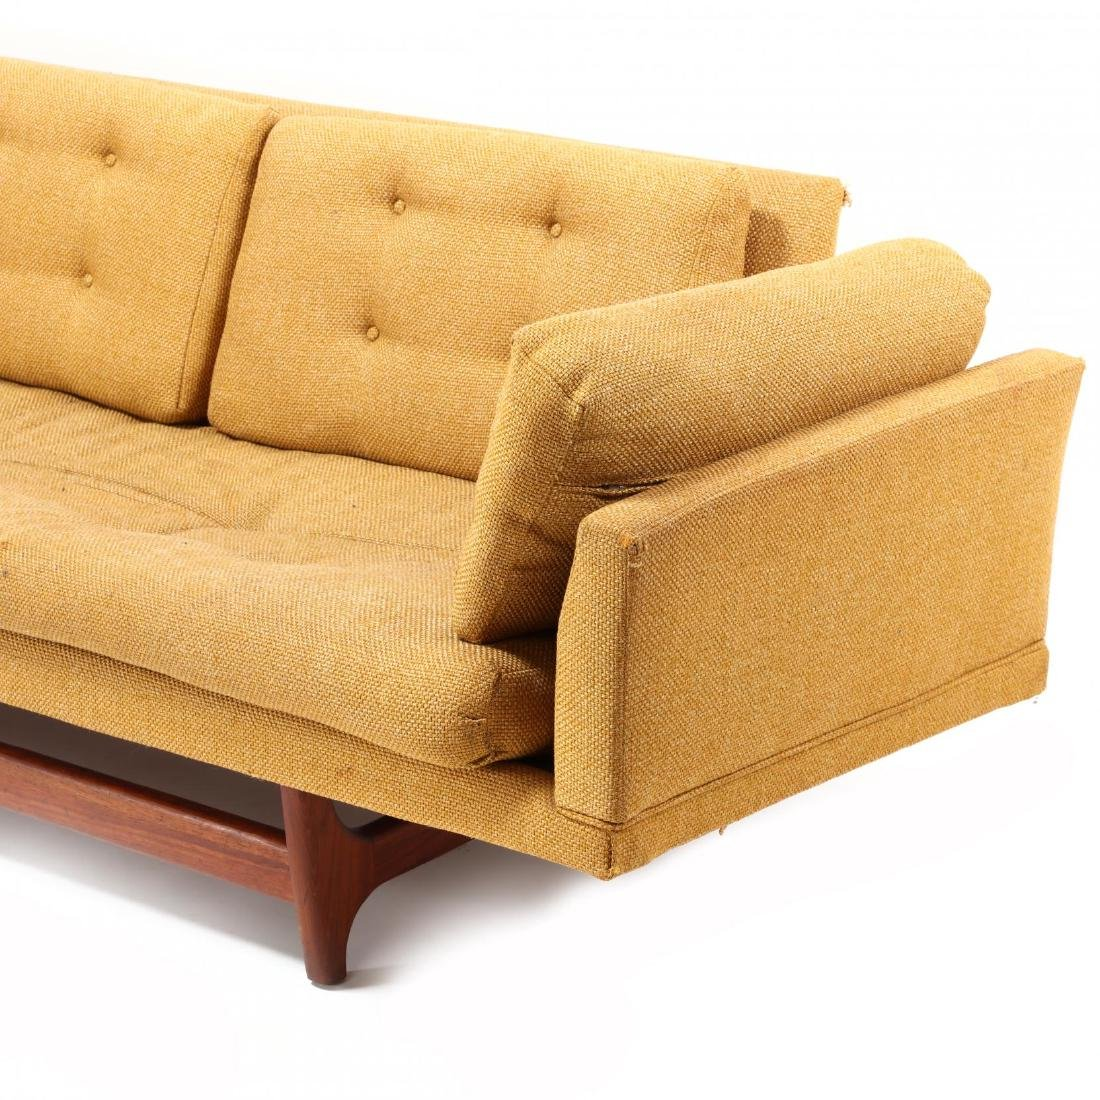 Adrian Persall, Streamlined Modernist Sofa - 4